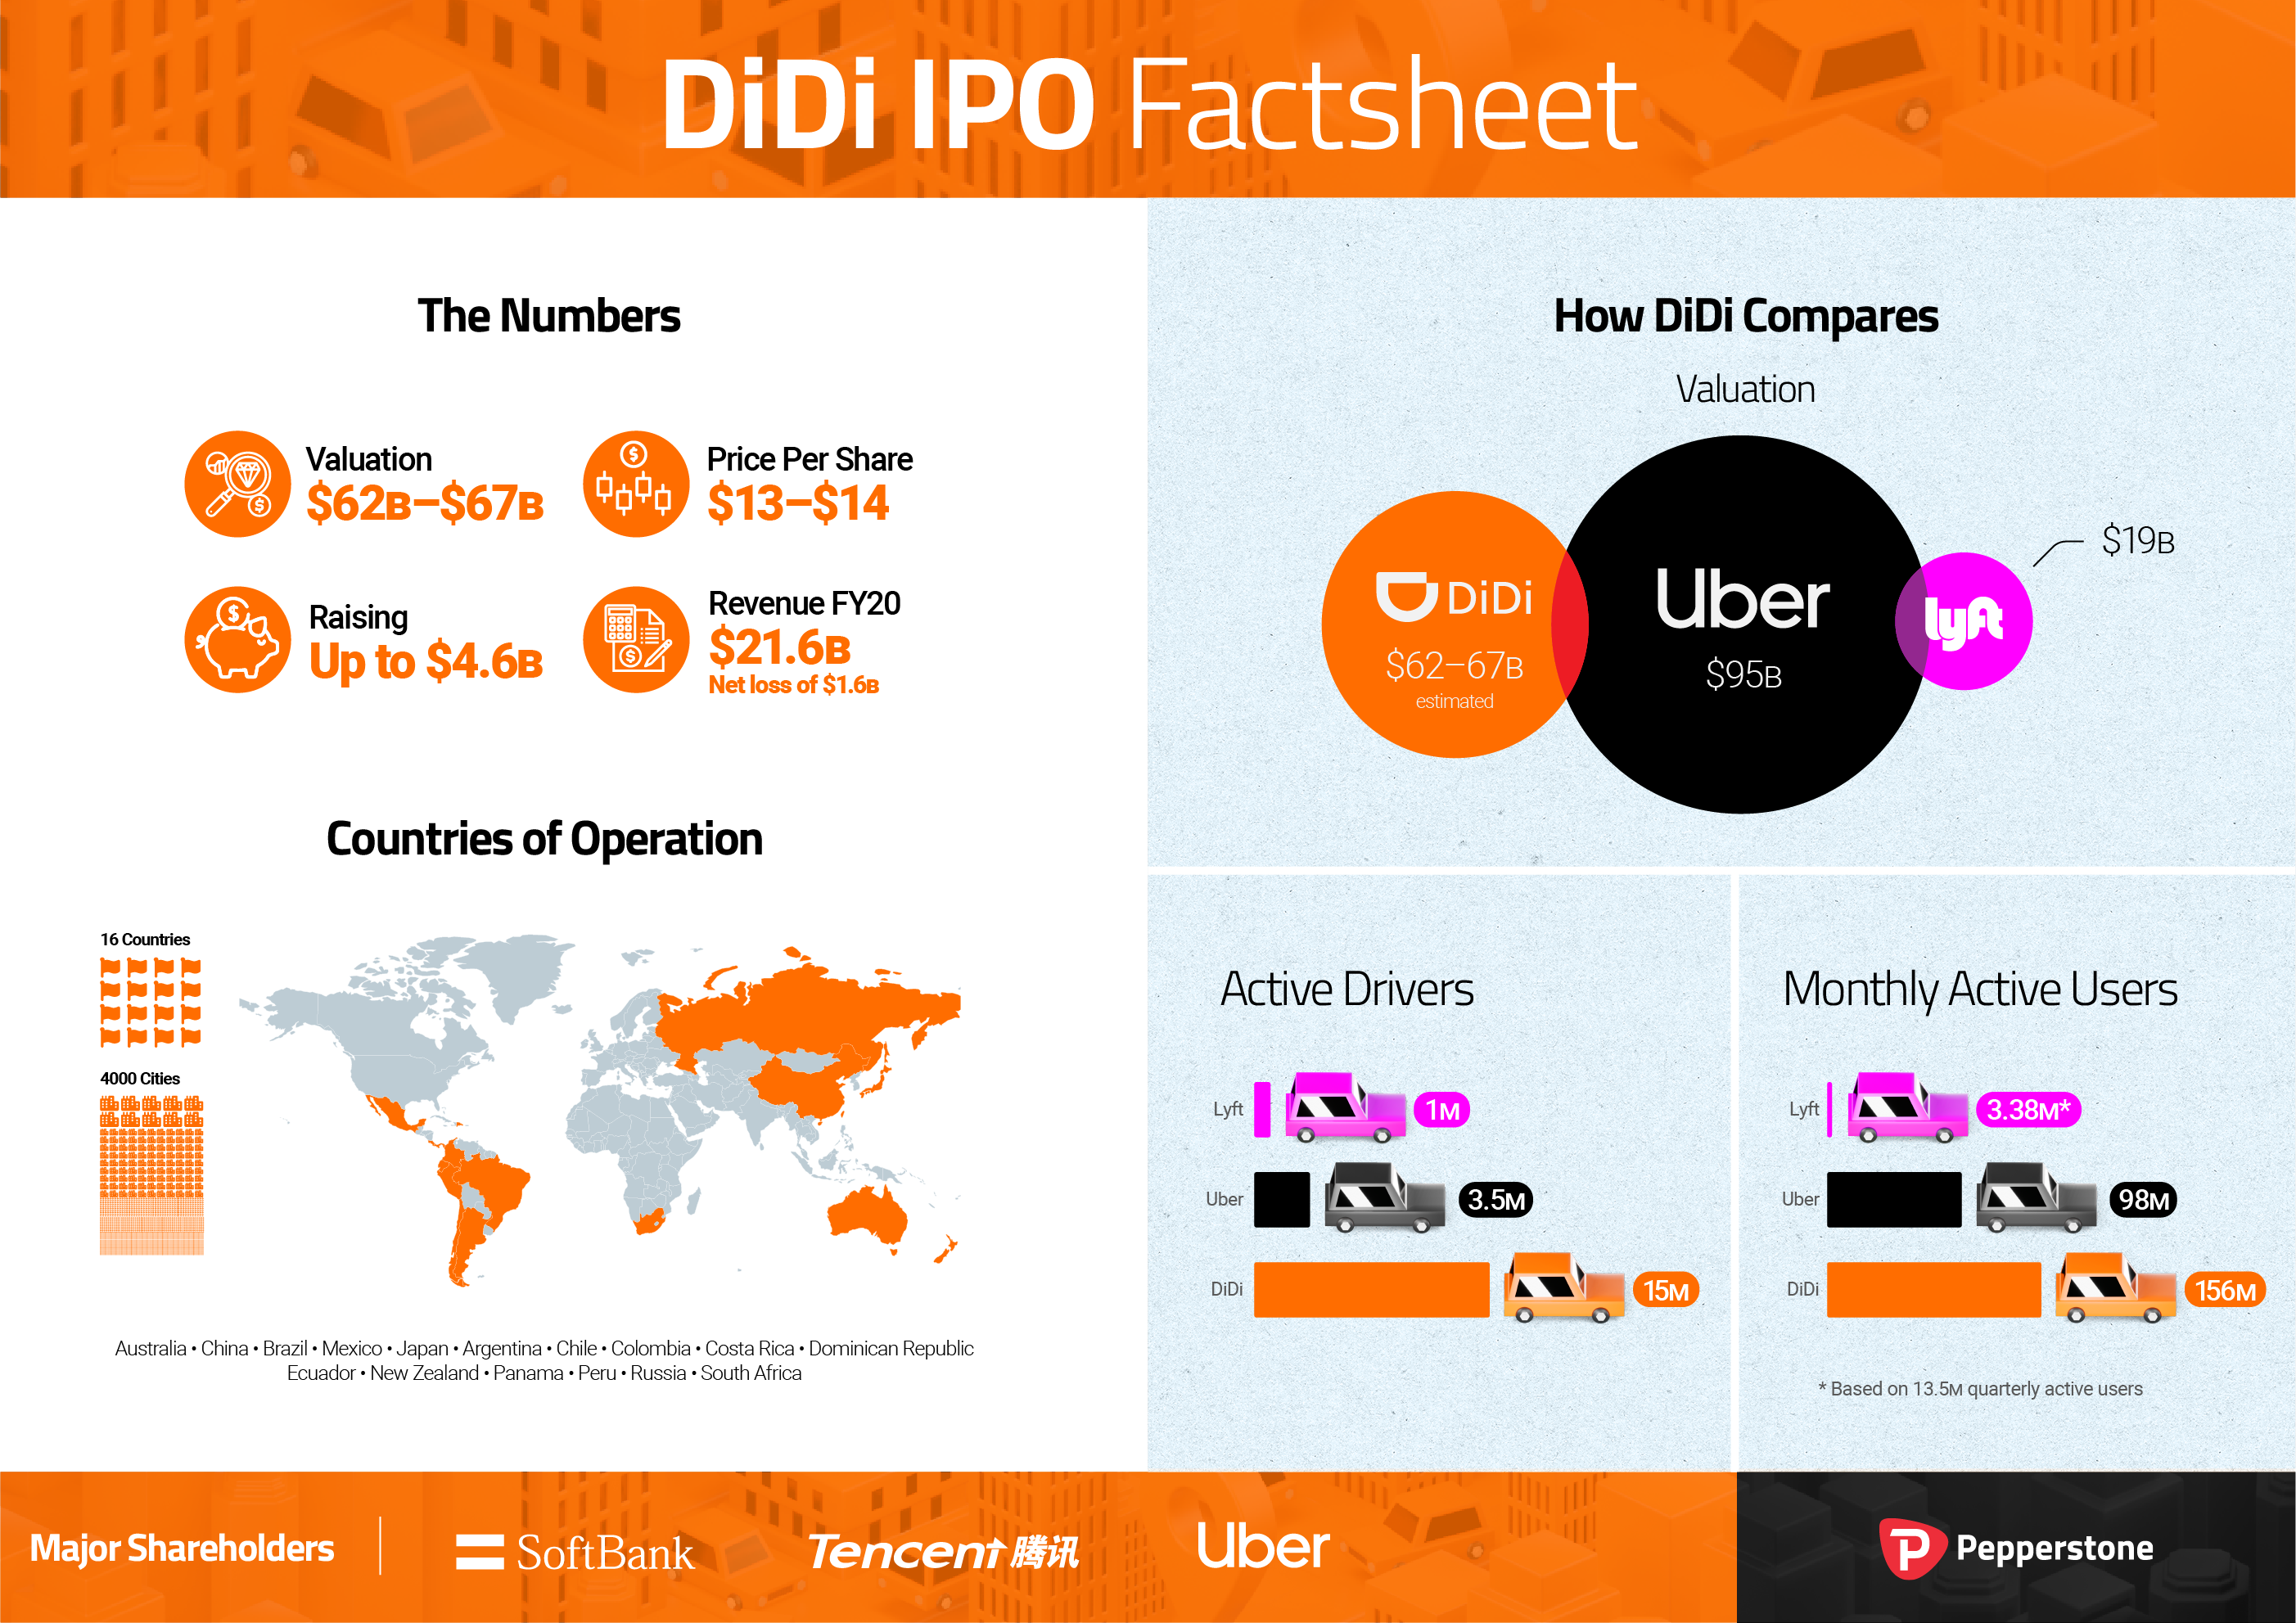 PEP_DiDiIPO_Infographic_210630_v03_Full_Landscape.png